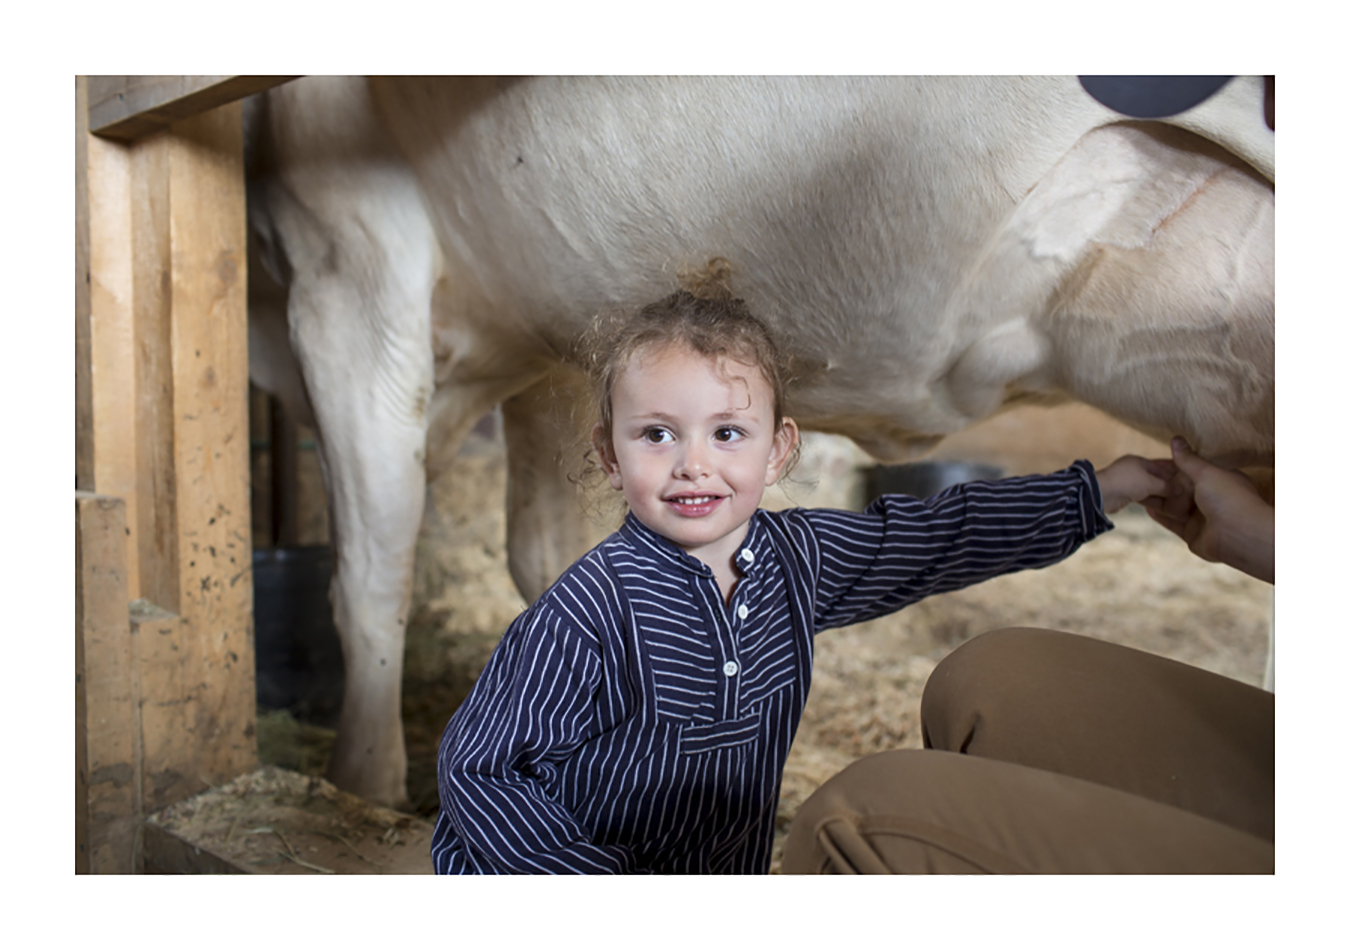 Cow milking at Shelburne Farms. Pic. by Dylan Griffin